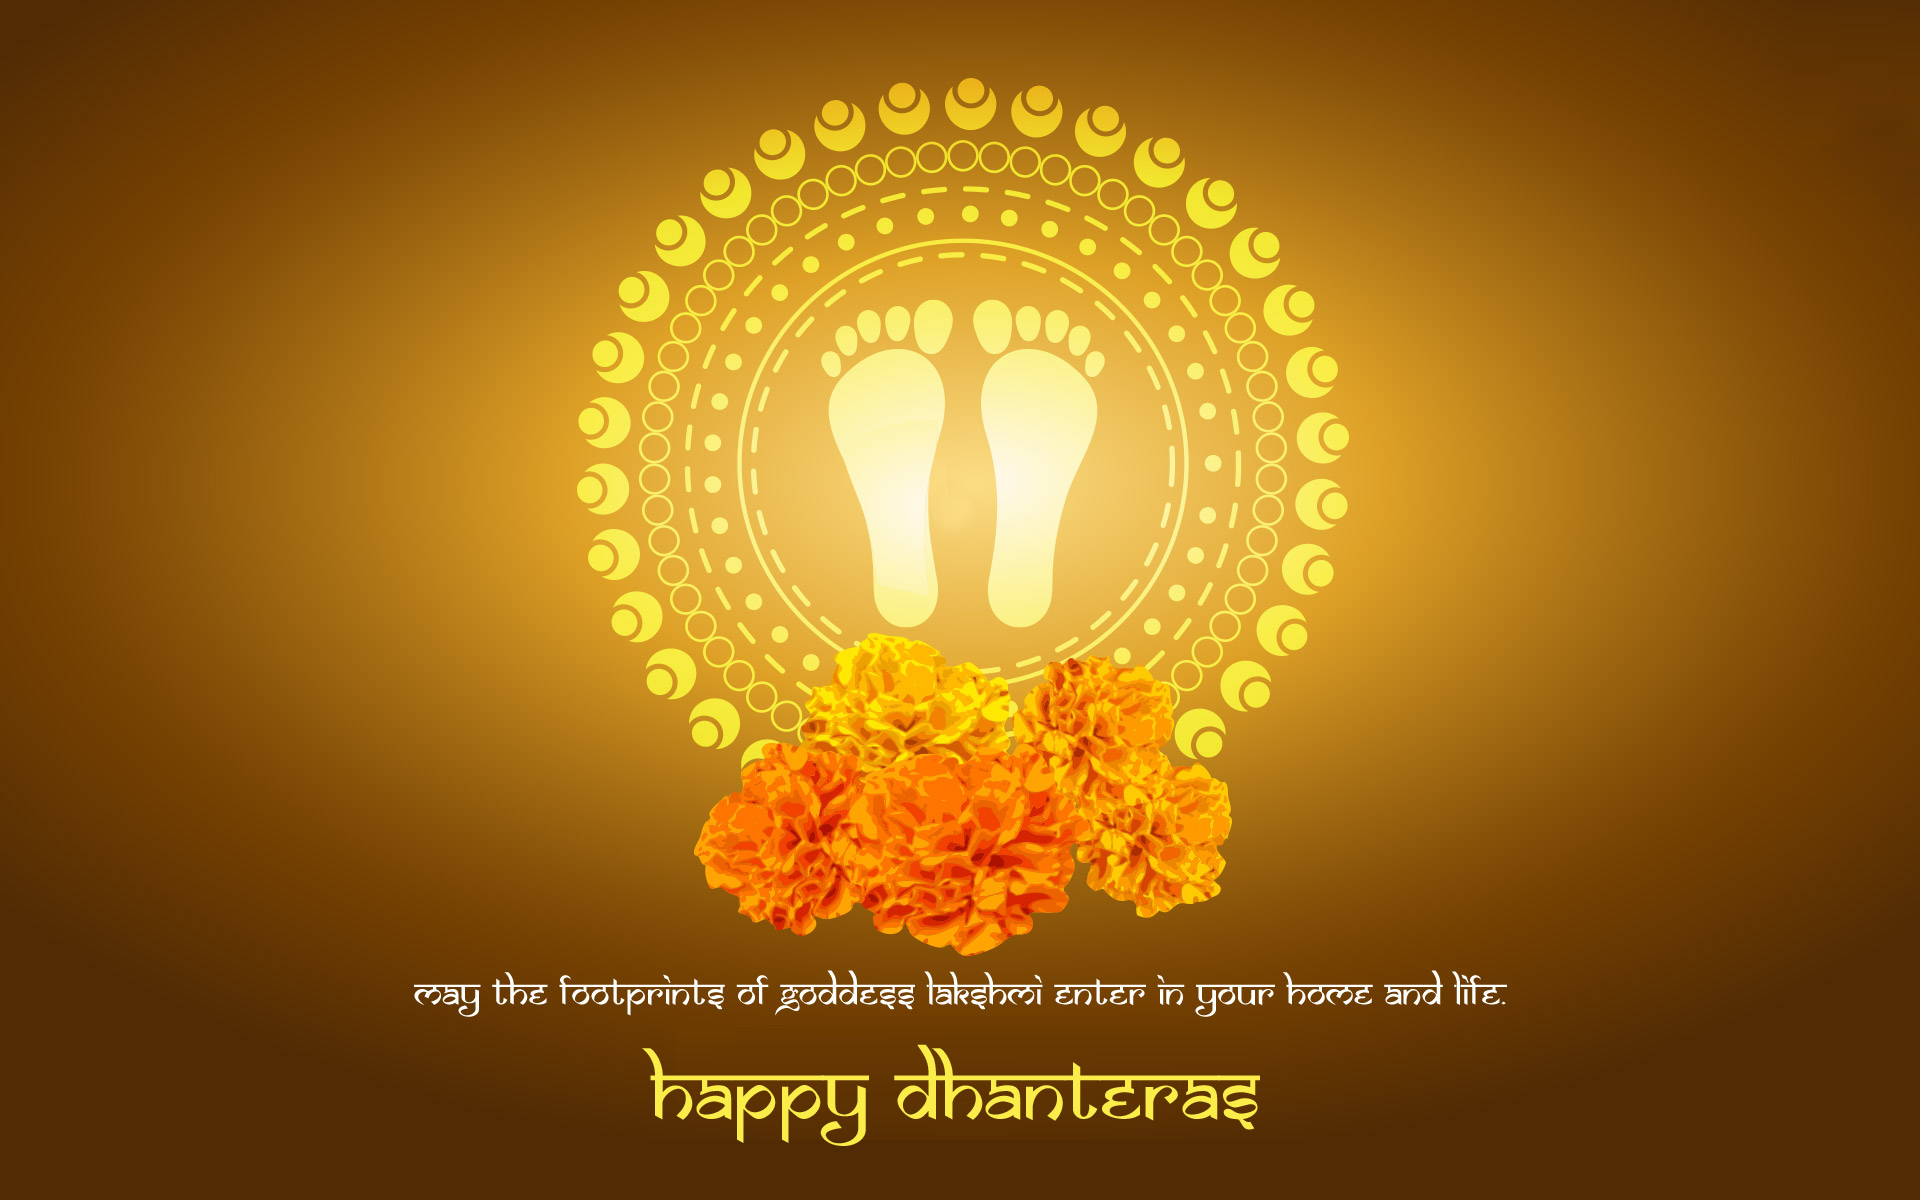 Happy Diwali And Dhanteras Wallpapers: Happy Dhanteras Images, GIF, HD Wallpapers, 3D Pics